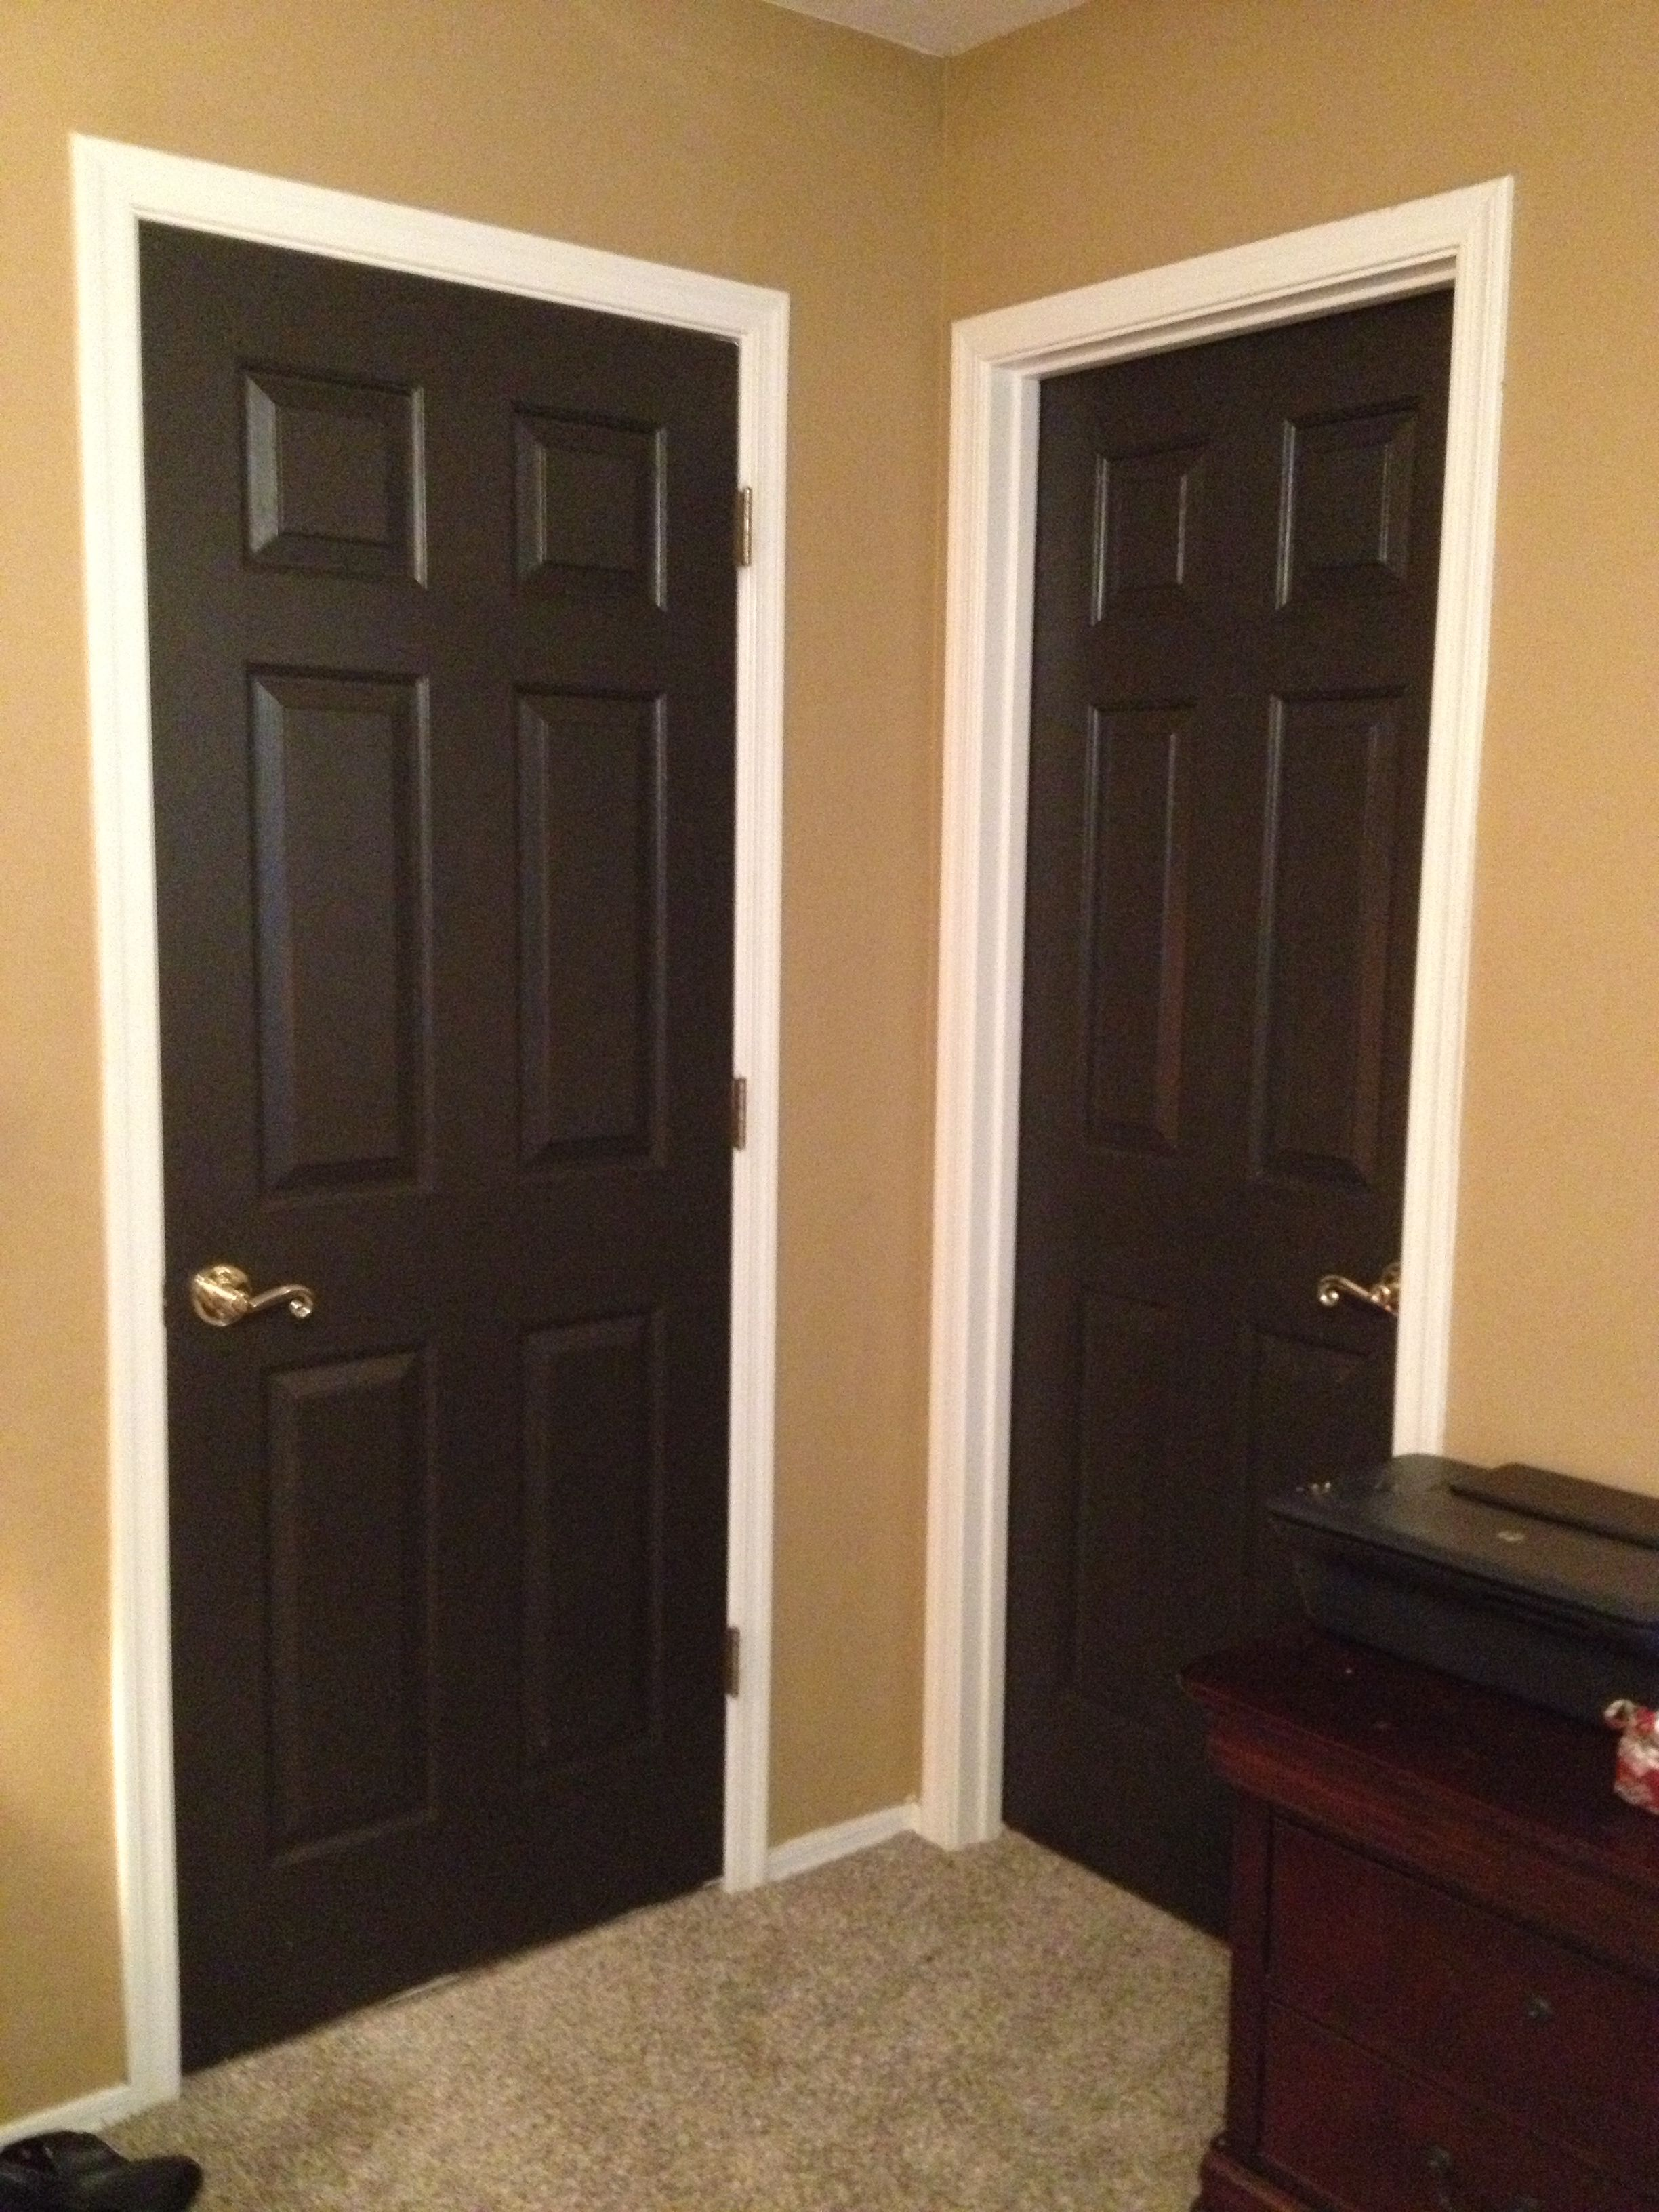 Black interior doors using Stealth Jet by Behr! This is a super dark grey or & Black interior doors using Stealth Jet by Behr! This is a super ... Pezcame.Com